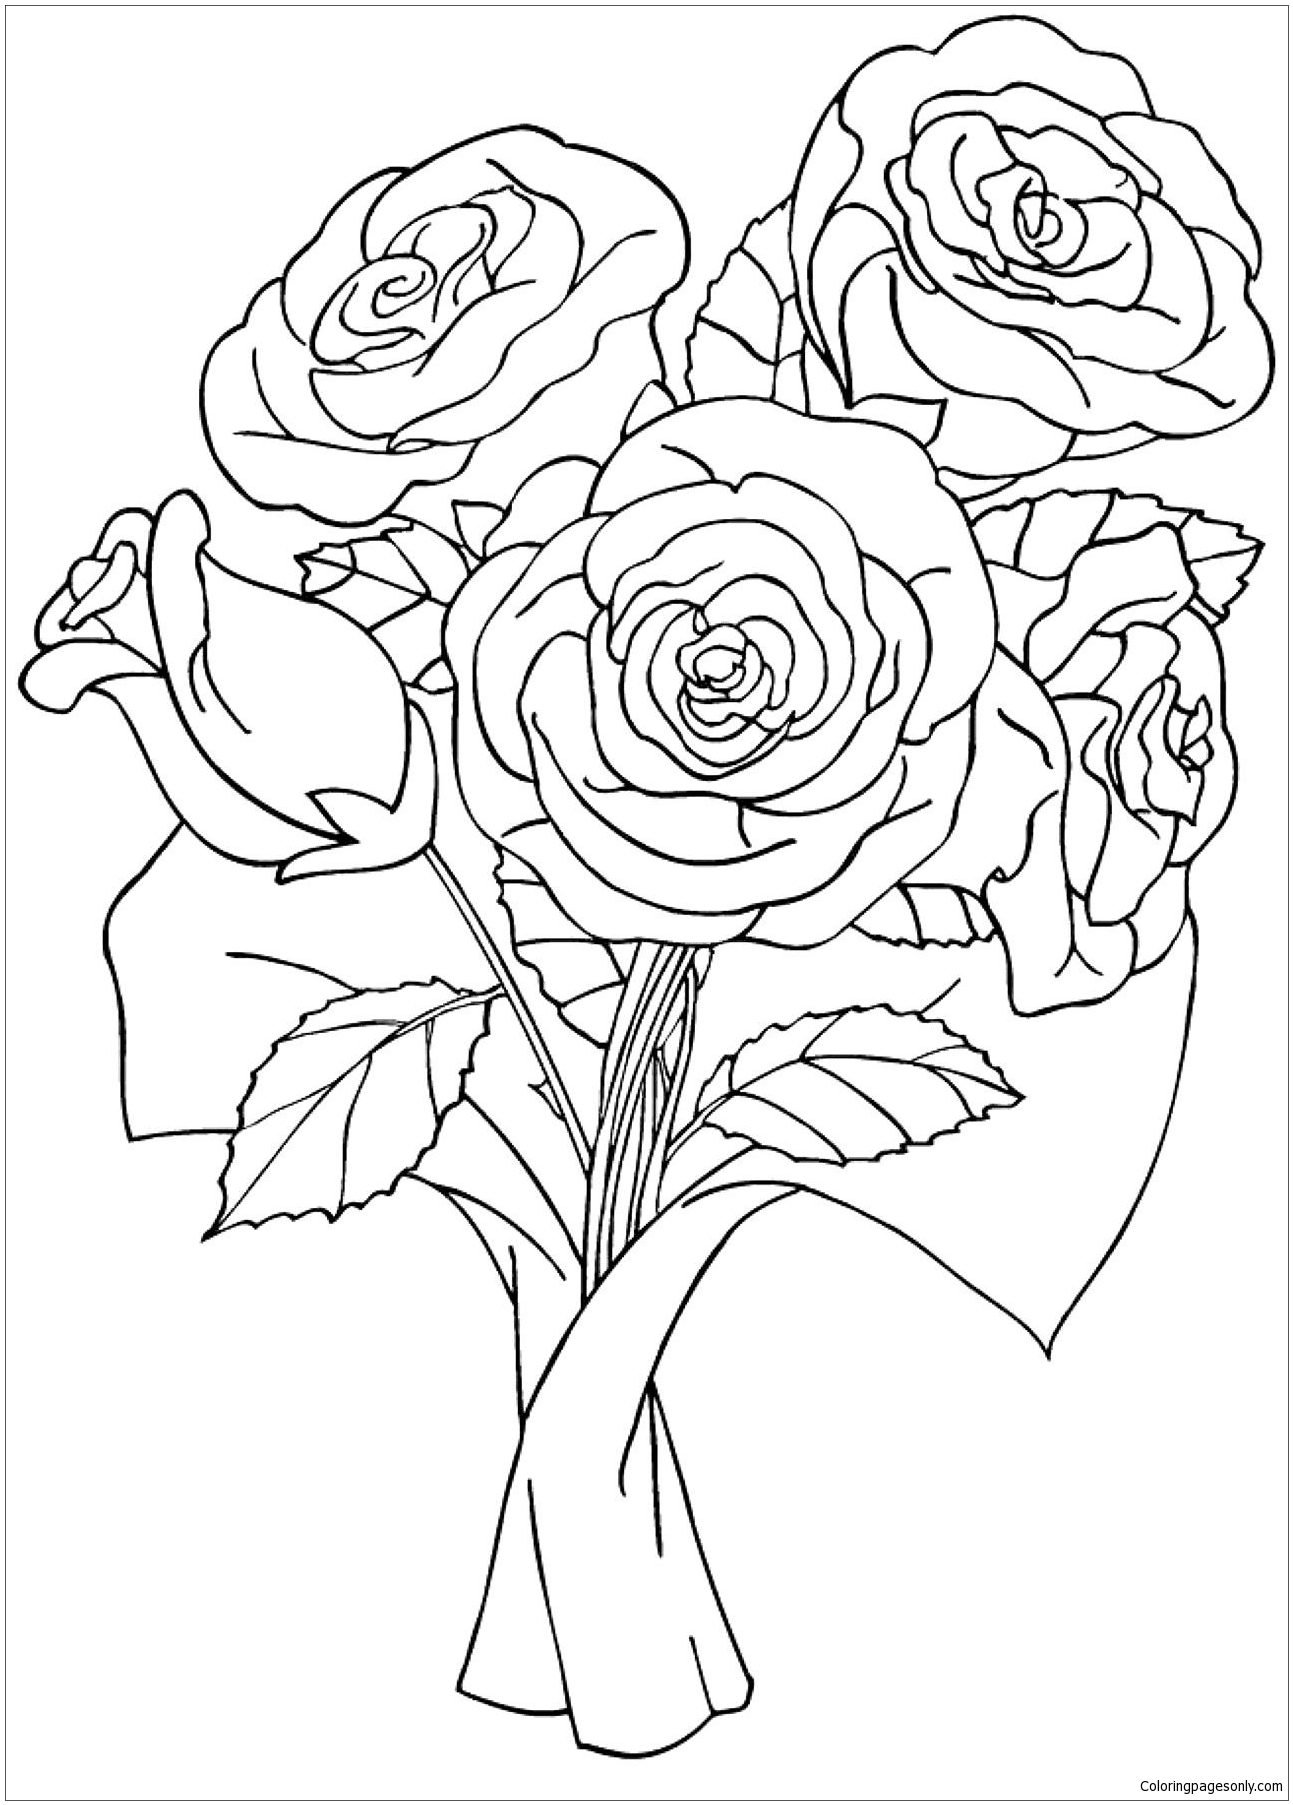 picture of a rose to color new fresh rose coloring page download print online a of picture to rose color